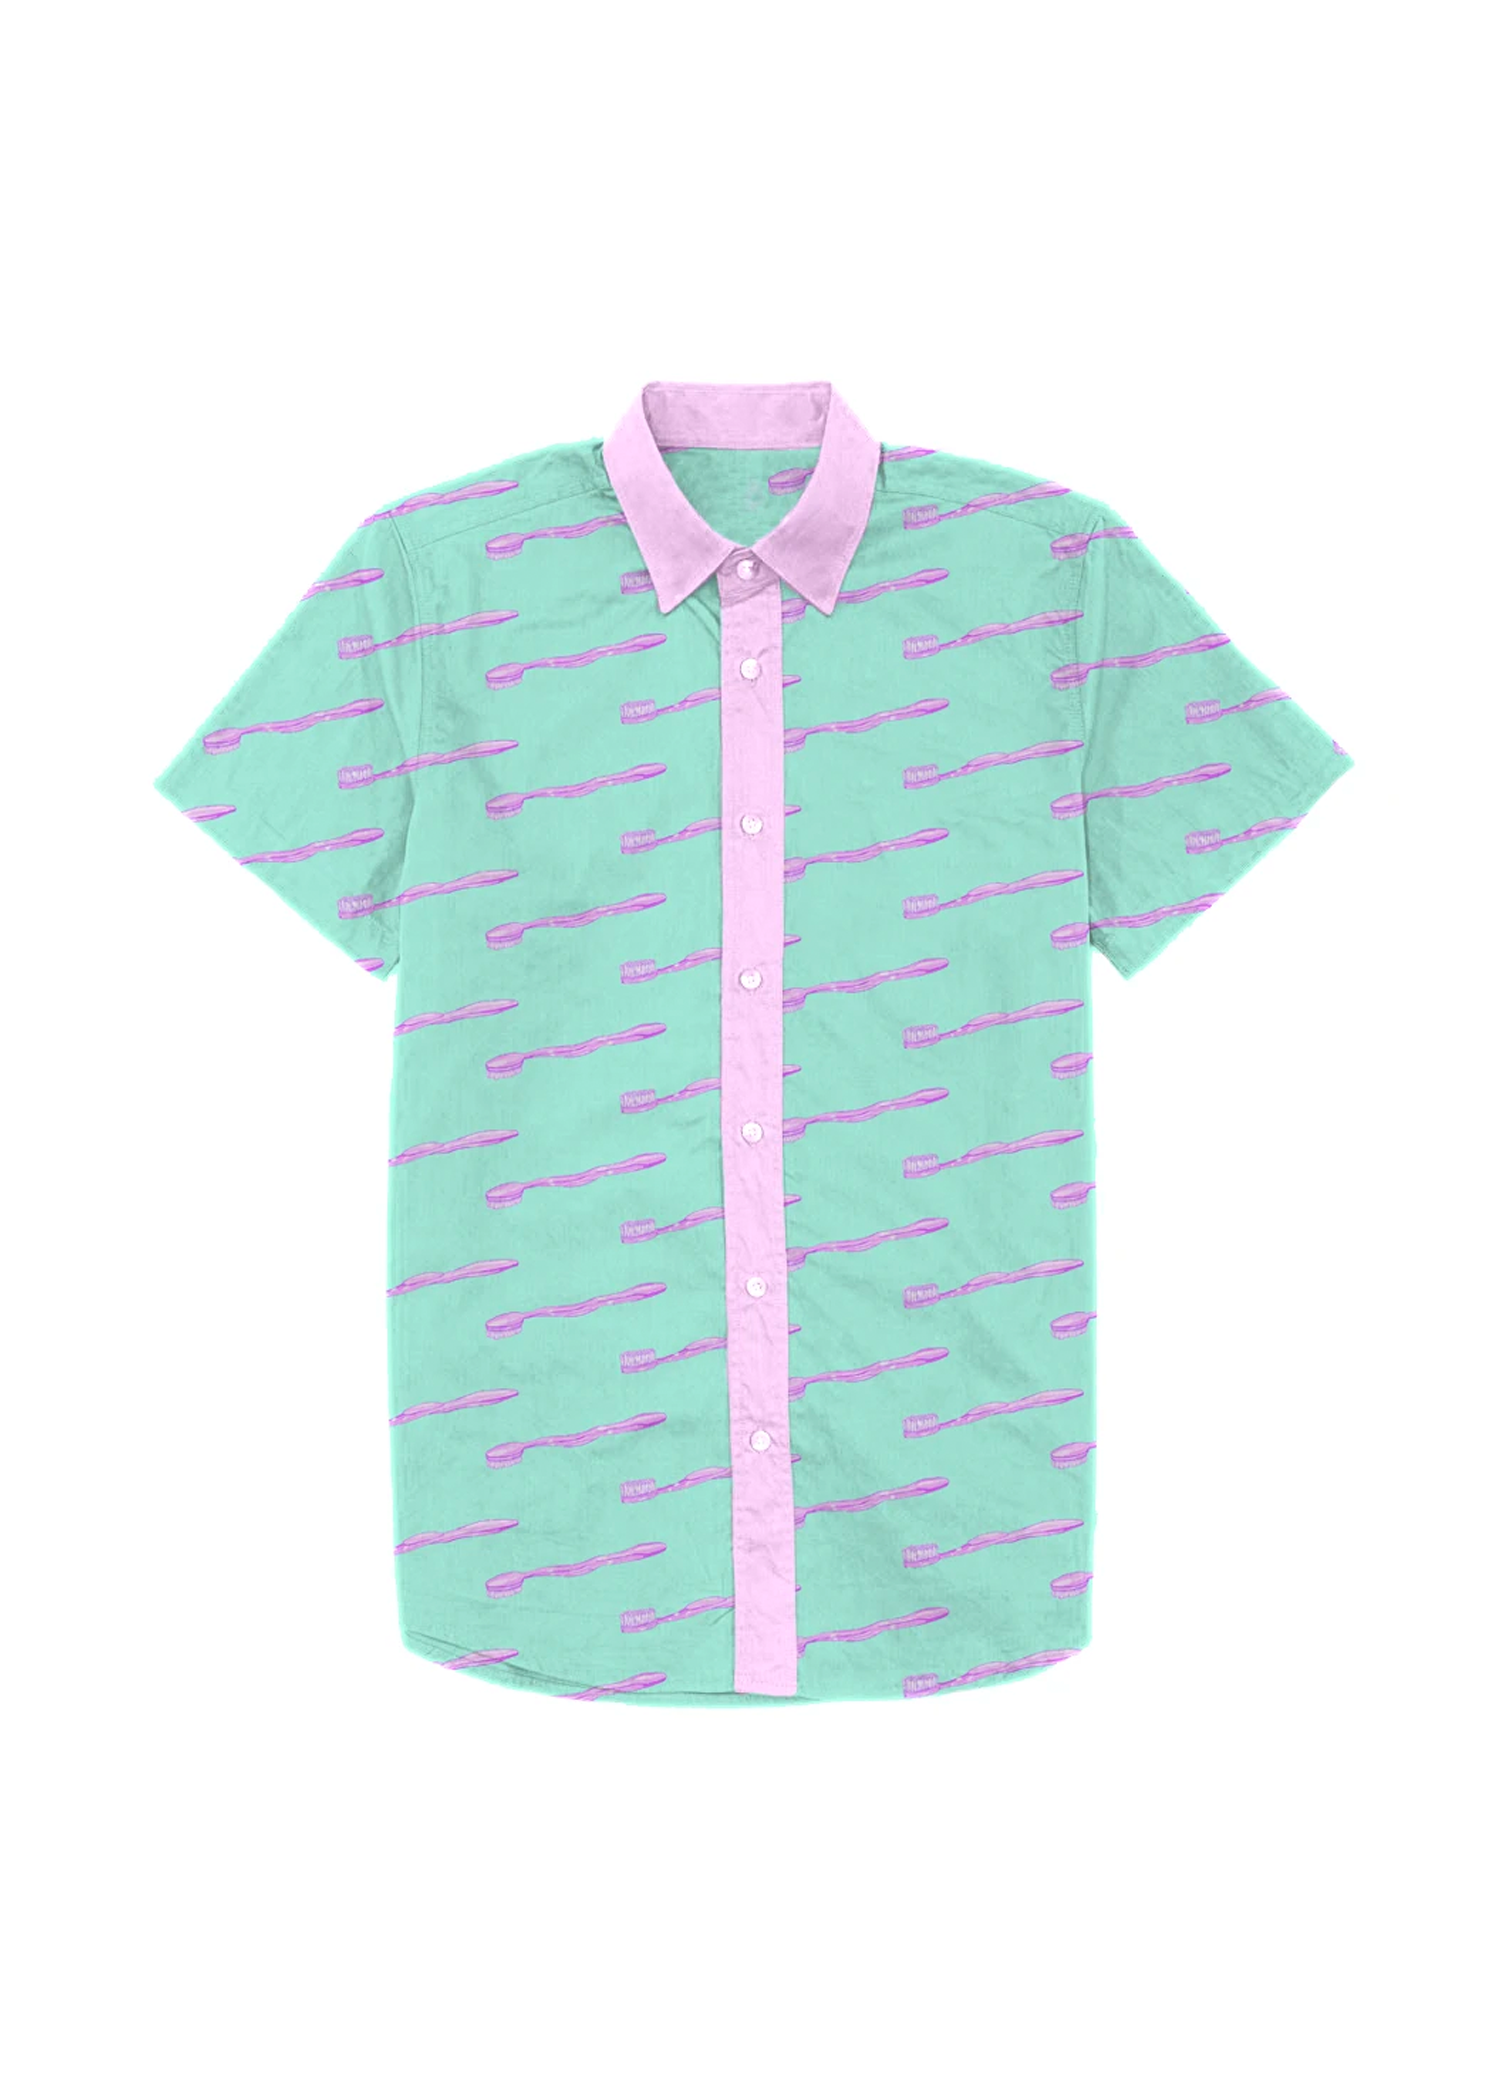 toothbrush dad shirt in mint & lilac